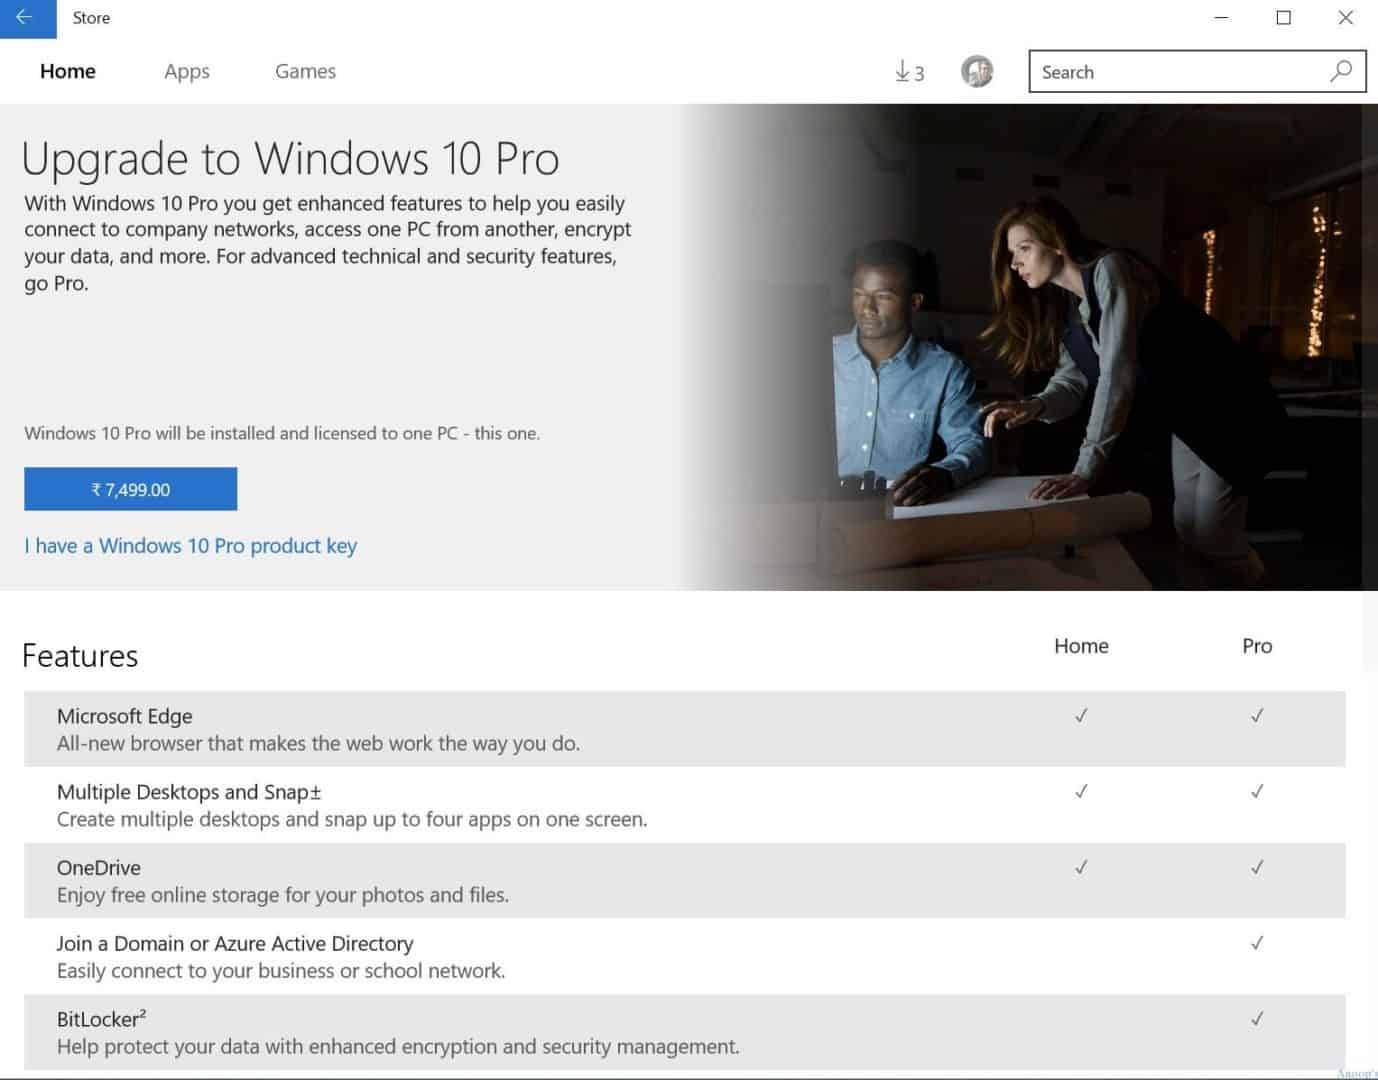 How to Purchase or Upgrade to Windows 10 Prof Edition and Change the Product Key 1